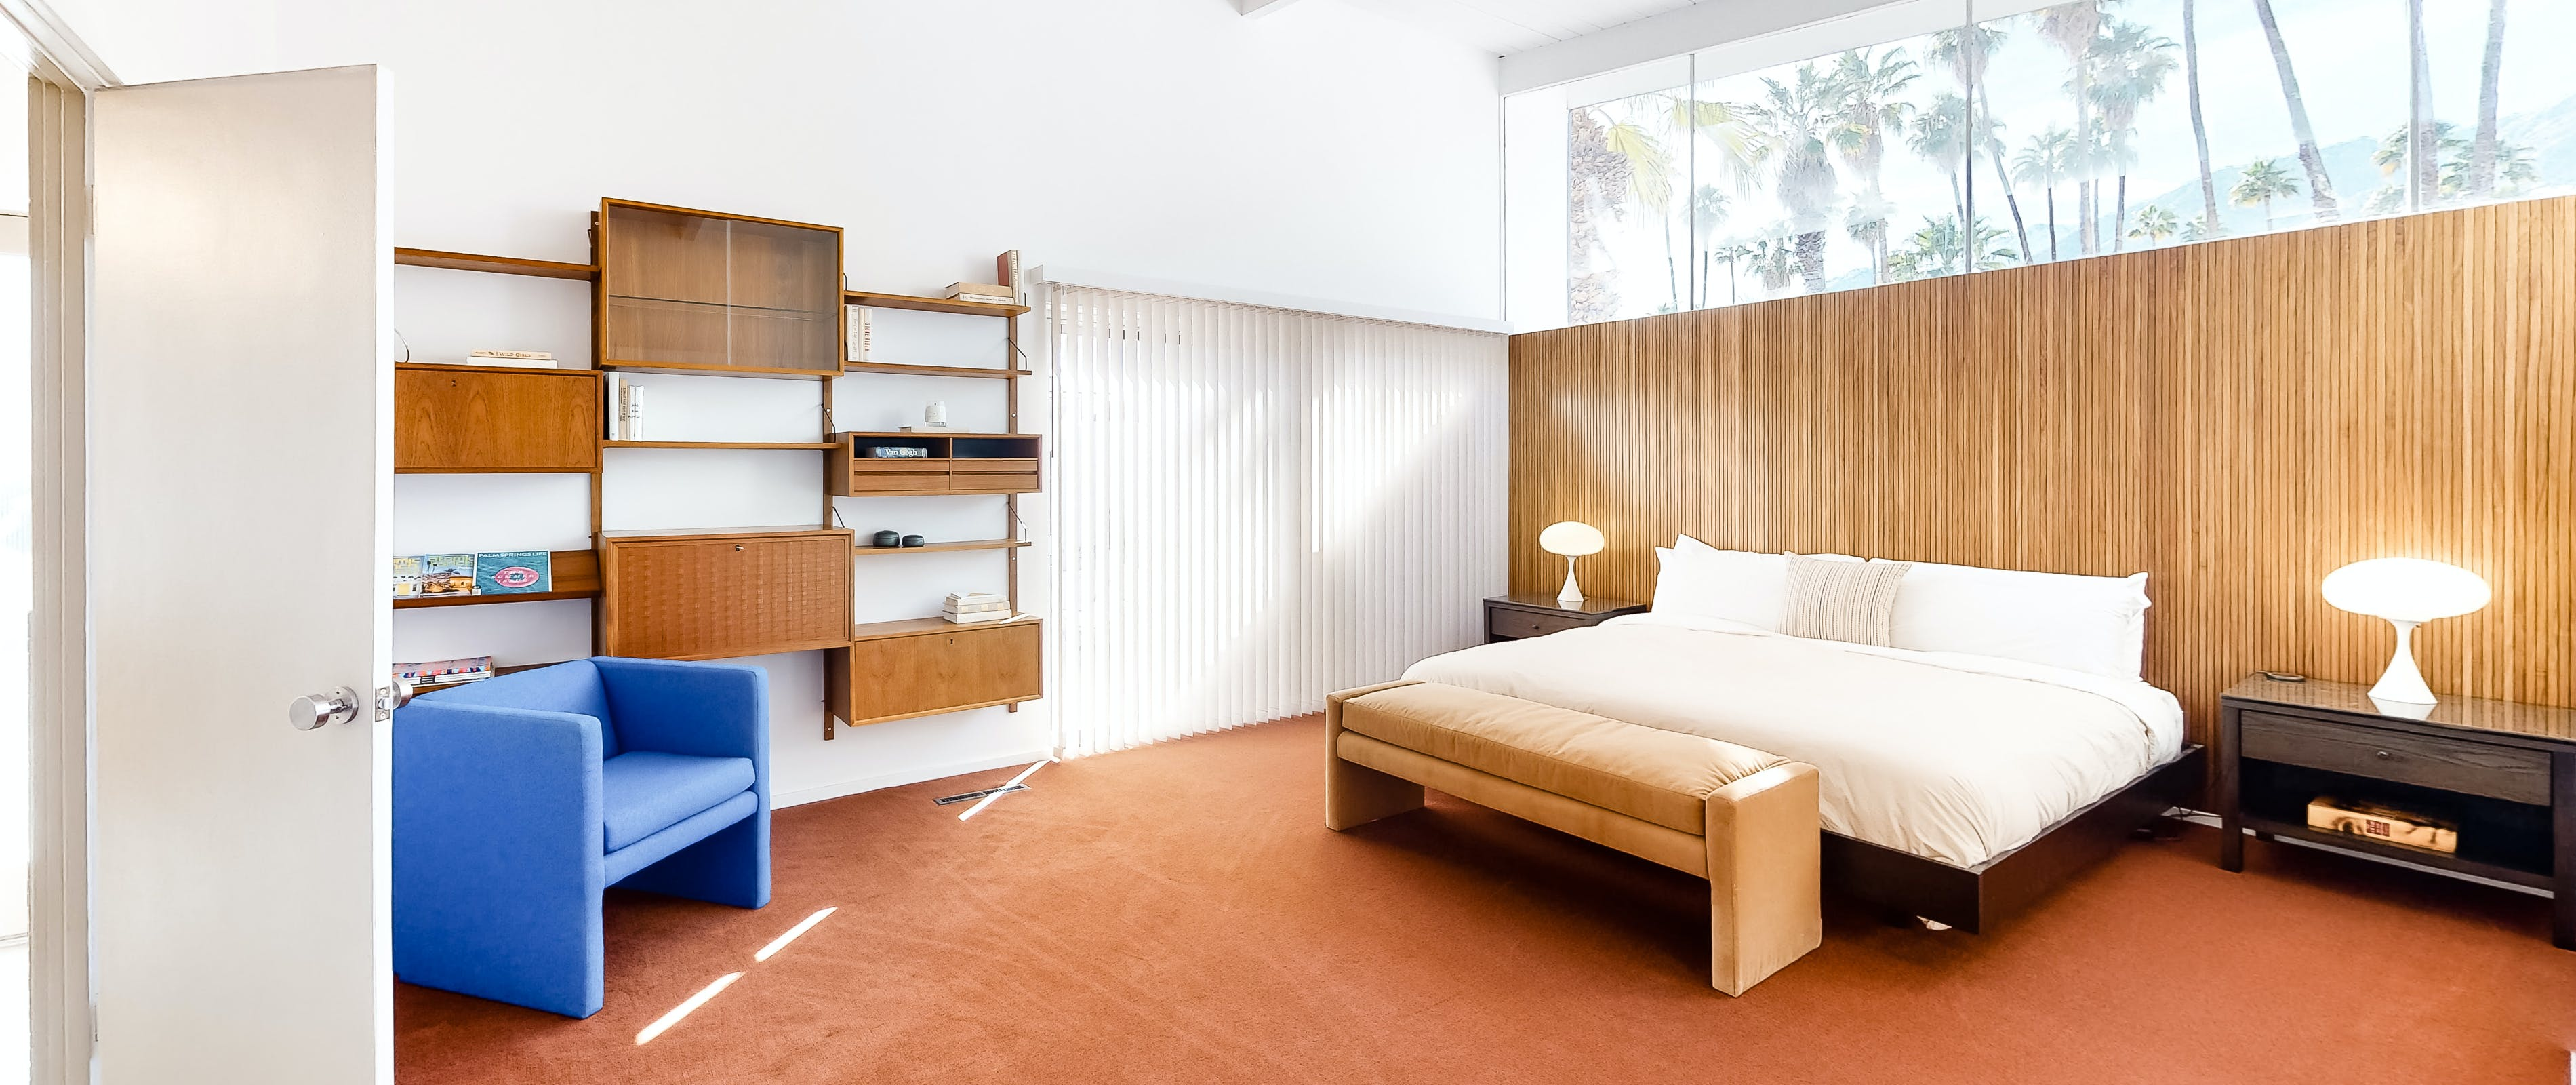 Inside a Palm Springs, CA vacation rental bedroom with large open space, white bed and hanging shelves.